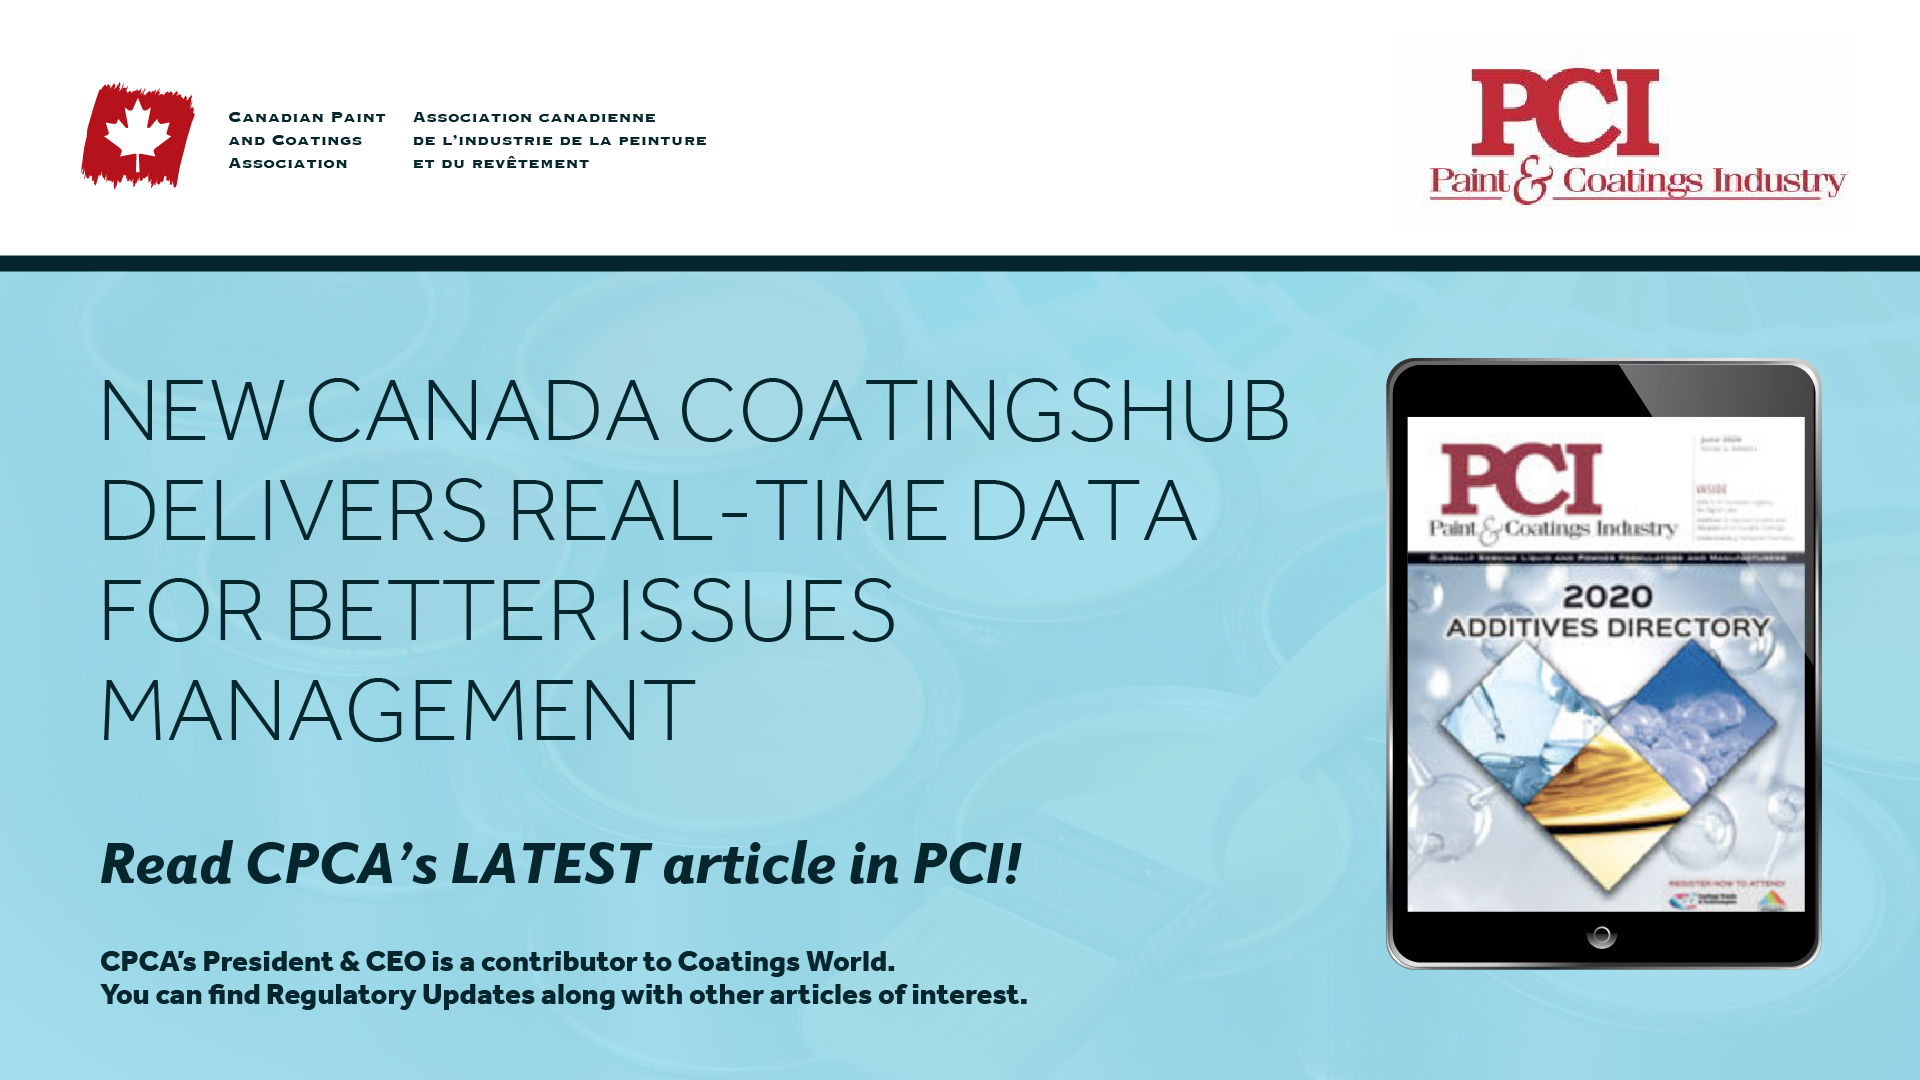 Canada CoatingsHUB Delivers Real-time Data